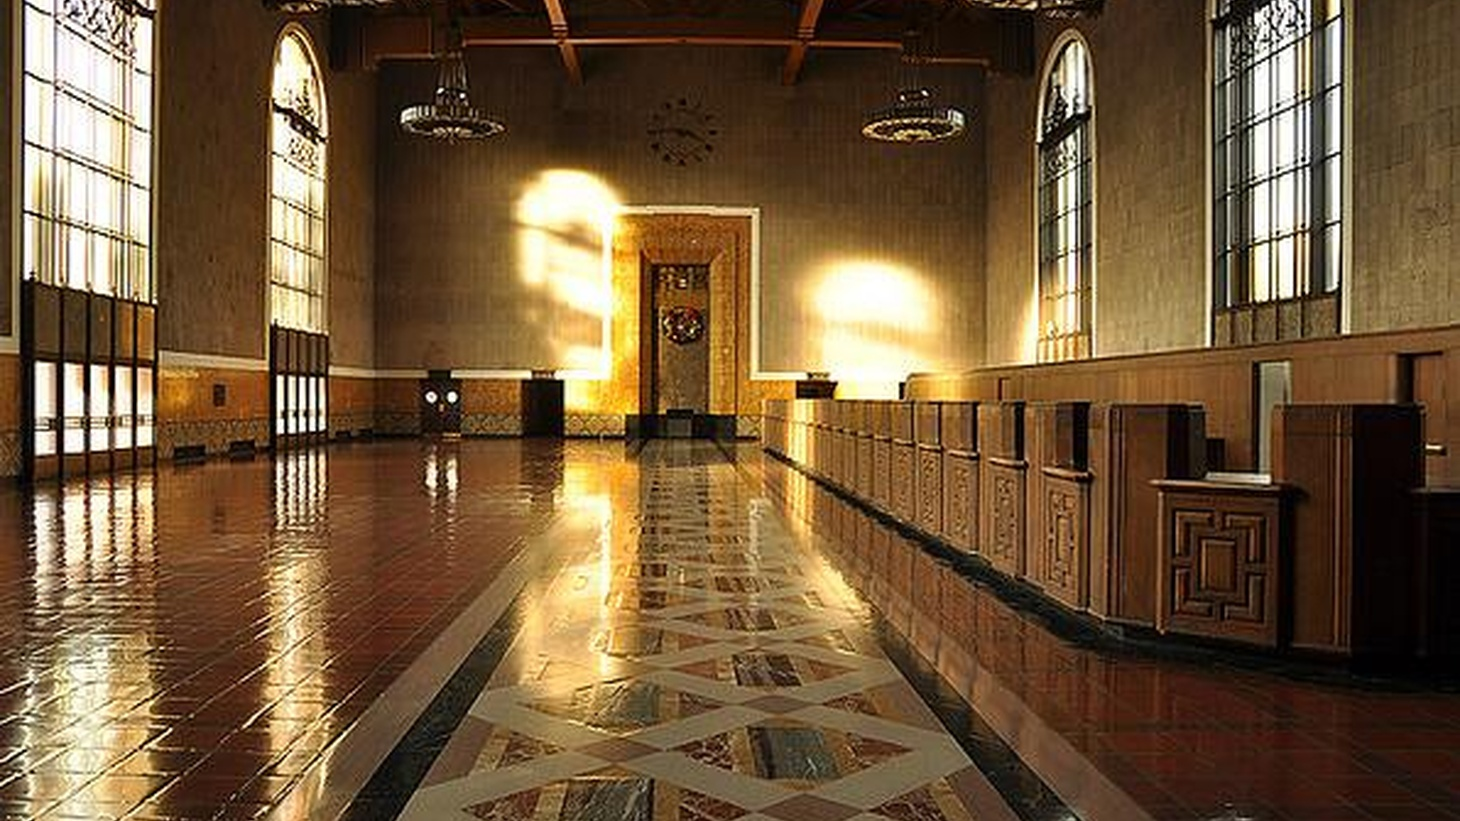 LA is looking for new ways to keep moving; Marlyn Musicant talks about Union Station and Avishay Artsy explores the centennial of a socialist utopia in So-Cal.